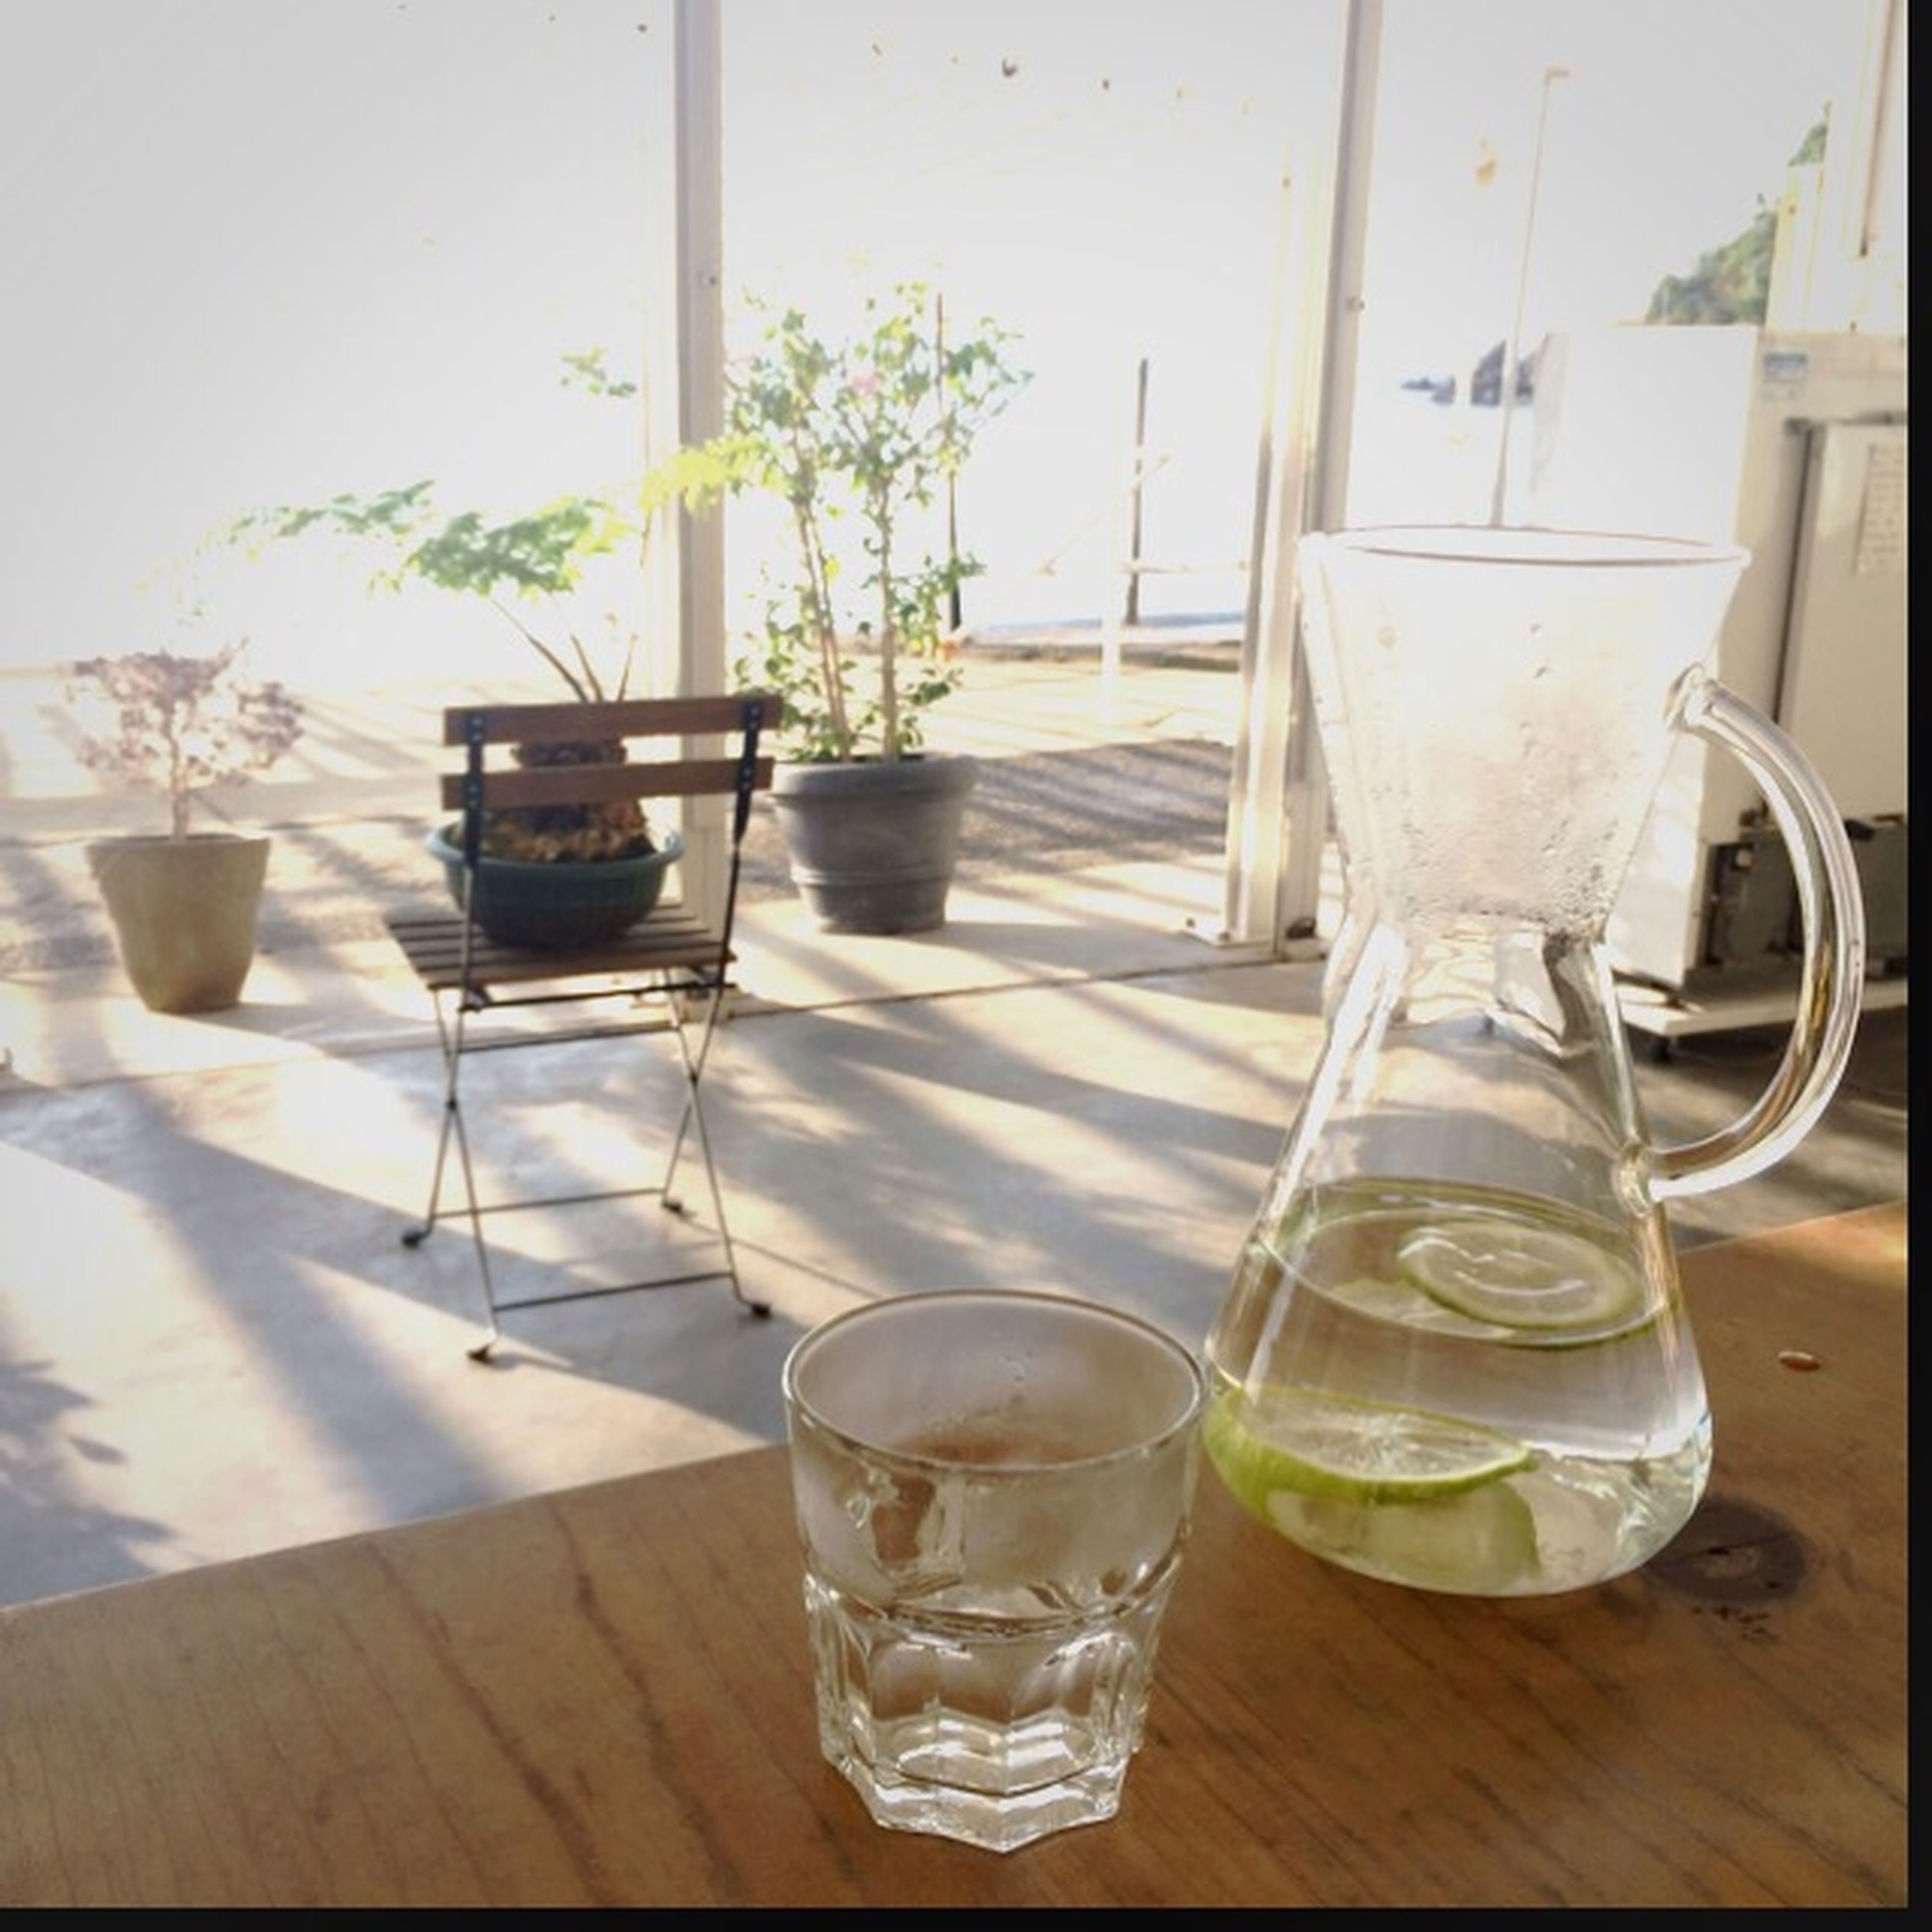 table, indoors, drinking glass, drink, glass - material, transparent, refreshment, still life, vase, freshness, empty, glass, food and drink, absence, chair, home interior, window, wineglass, wood - material, sunlight